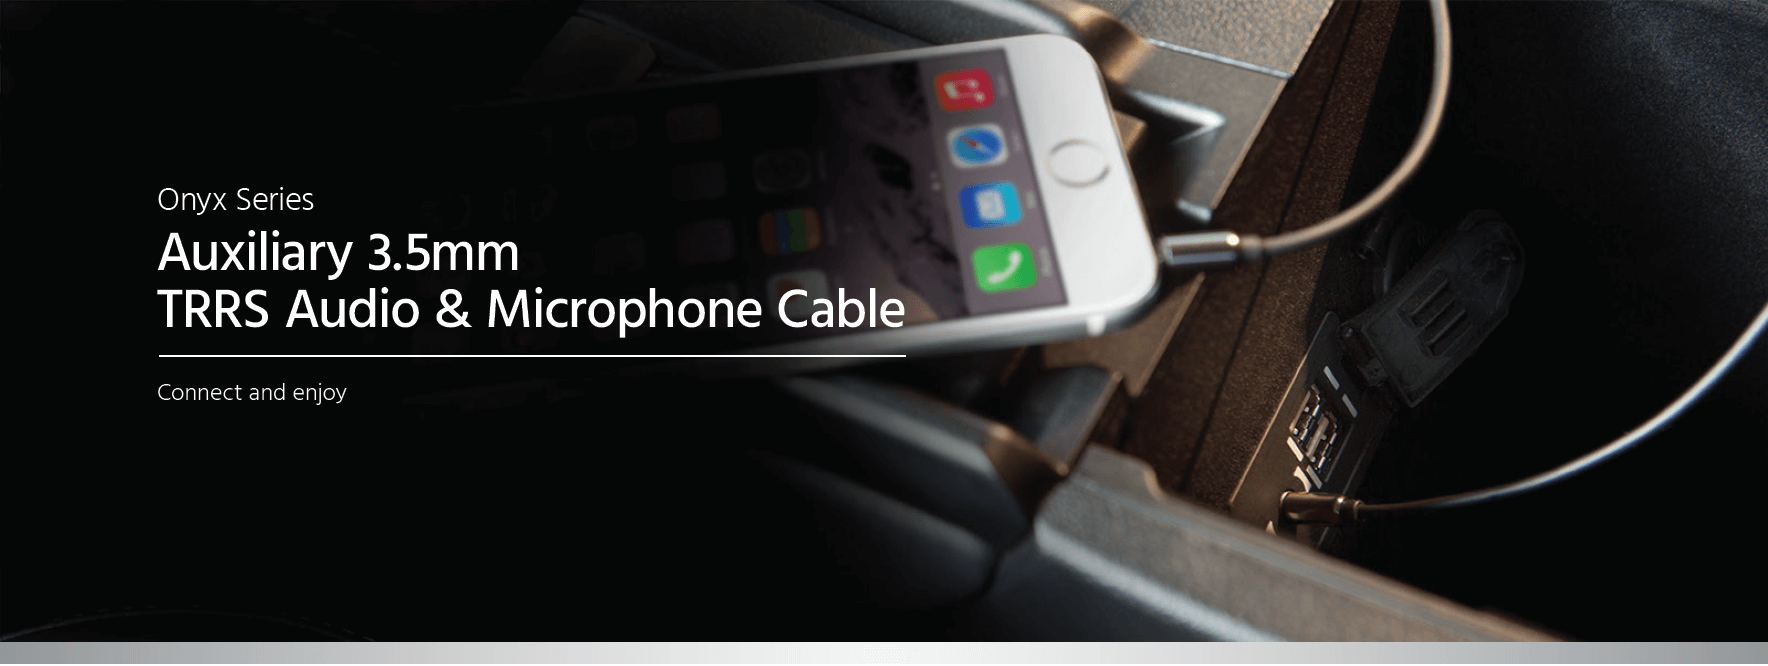 Auxiliary 3.5mm TRRS Audio & Microphone Cable